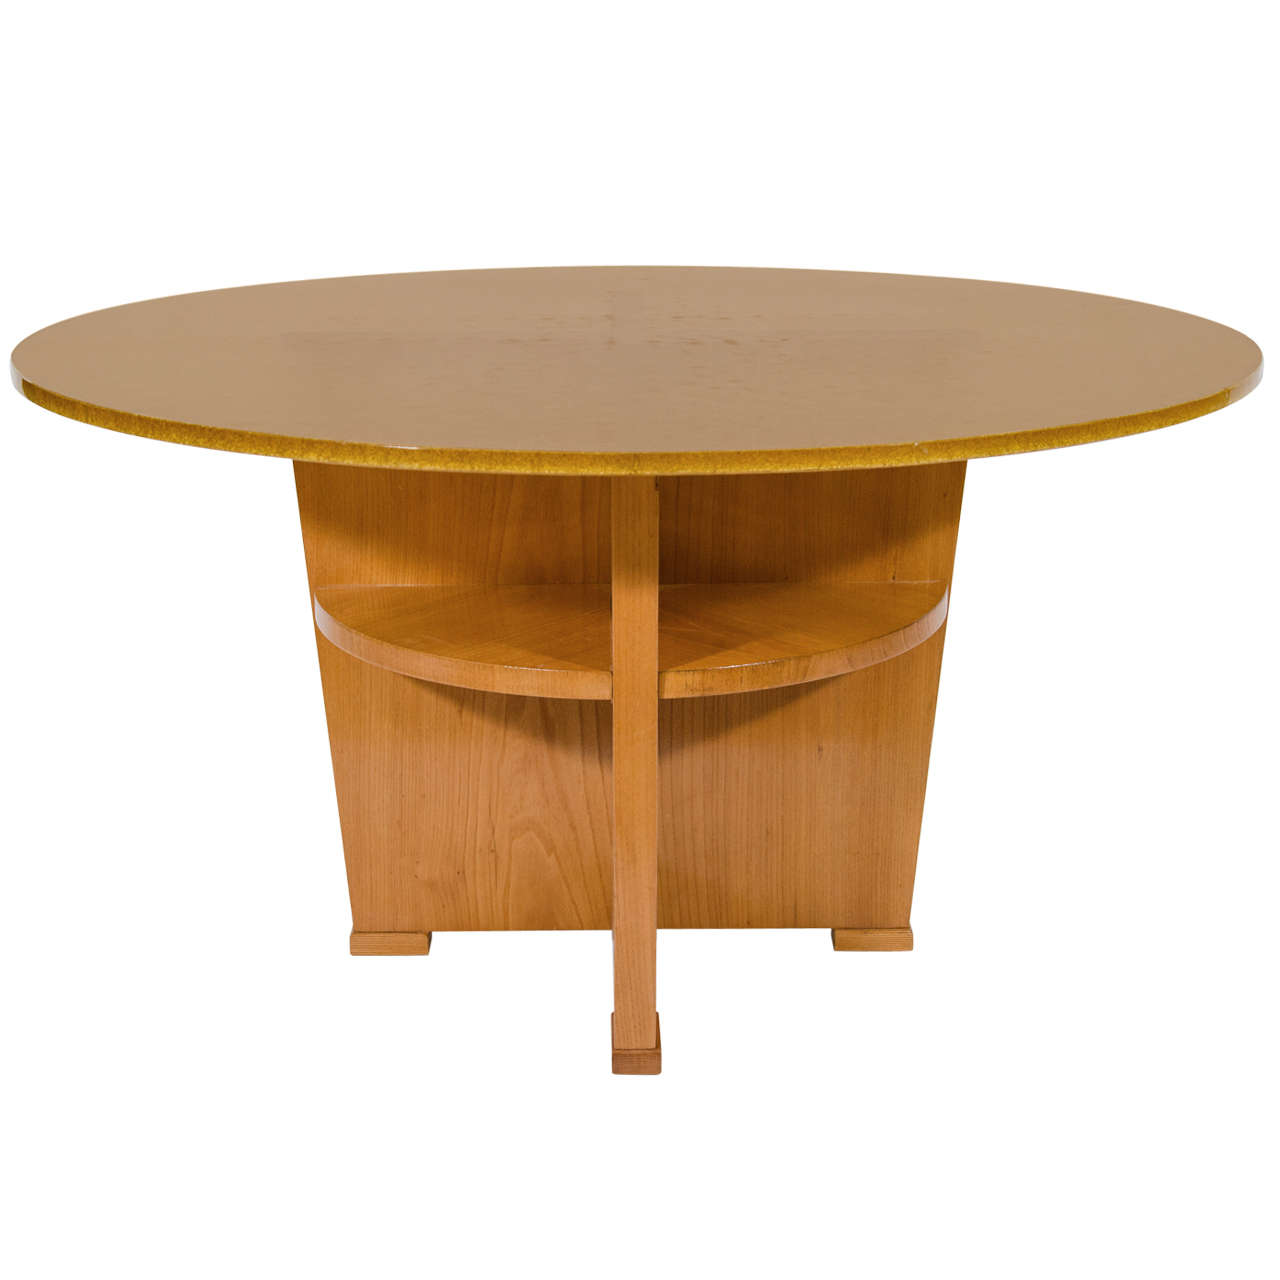 An Art Deco Coffee Table For Sale At 1stdibs